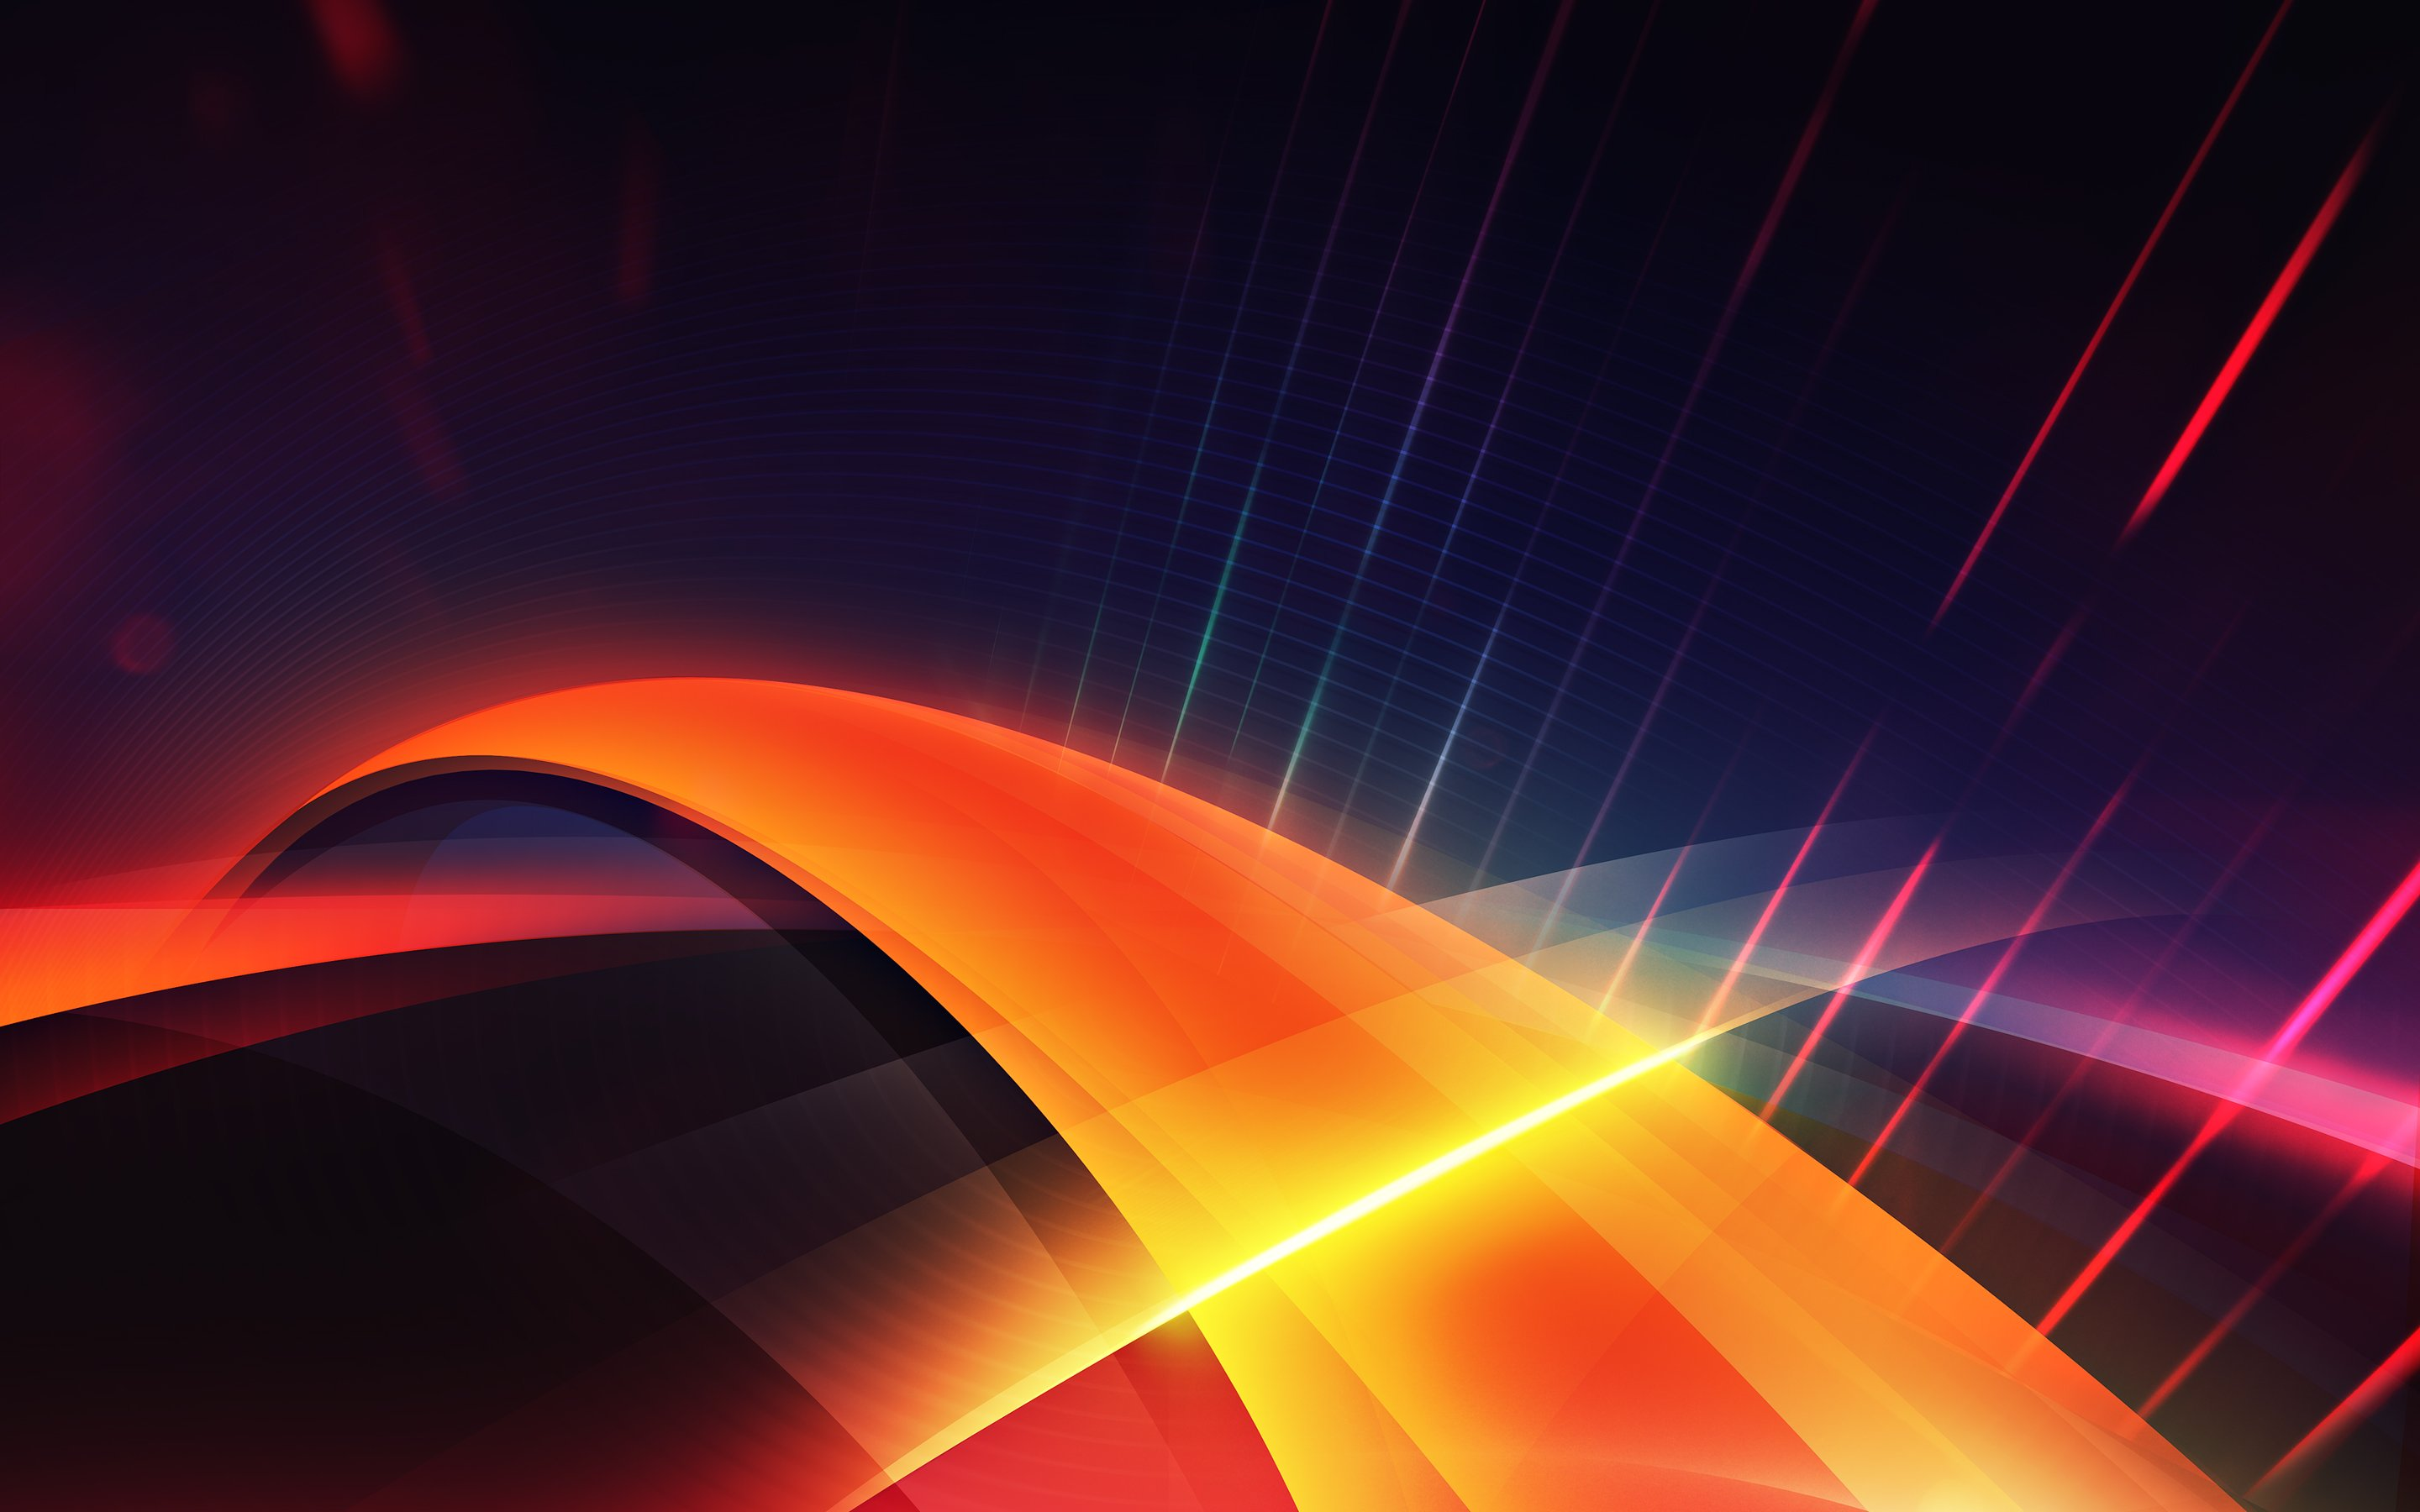 Digital Layers Wallpapers HD Wallpapers 2880x1800